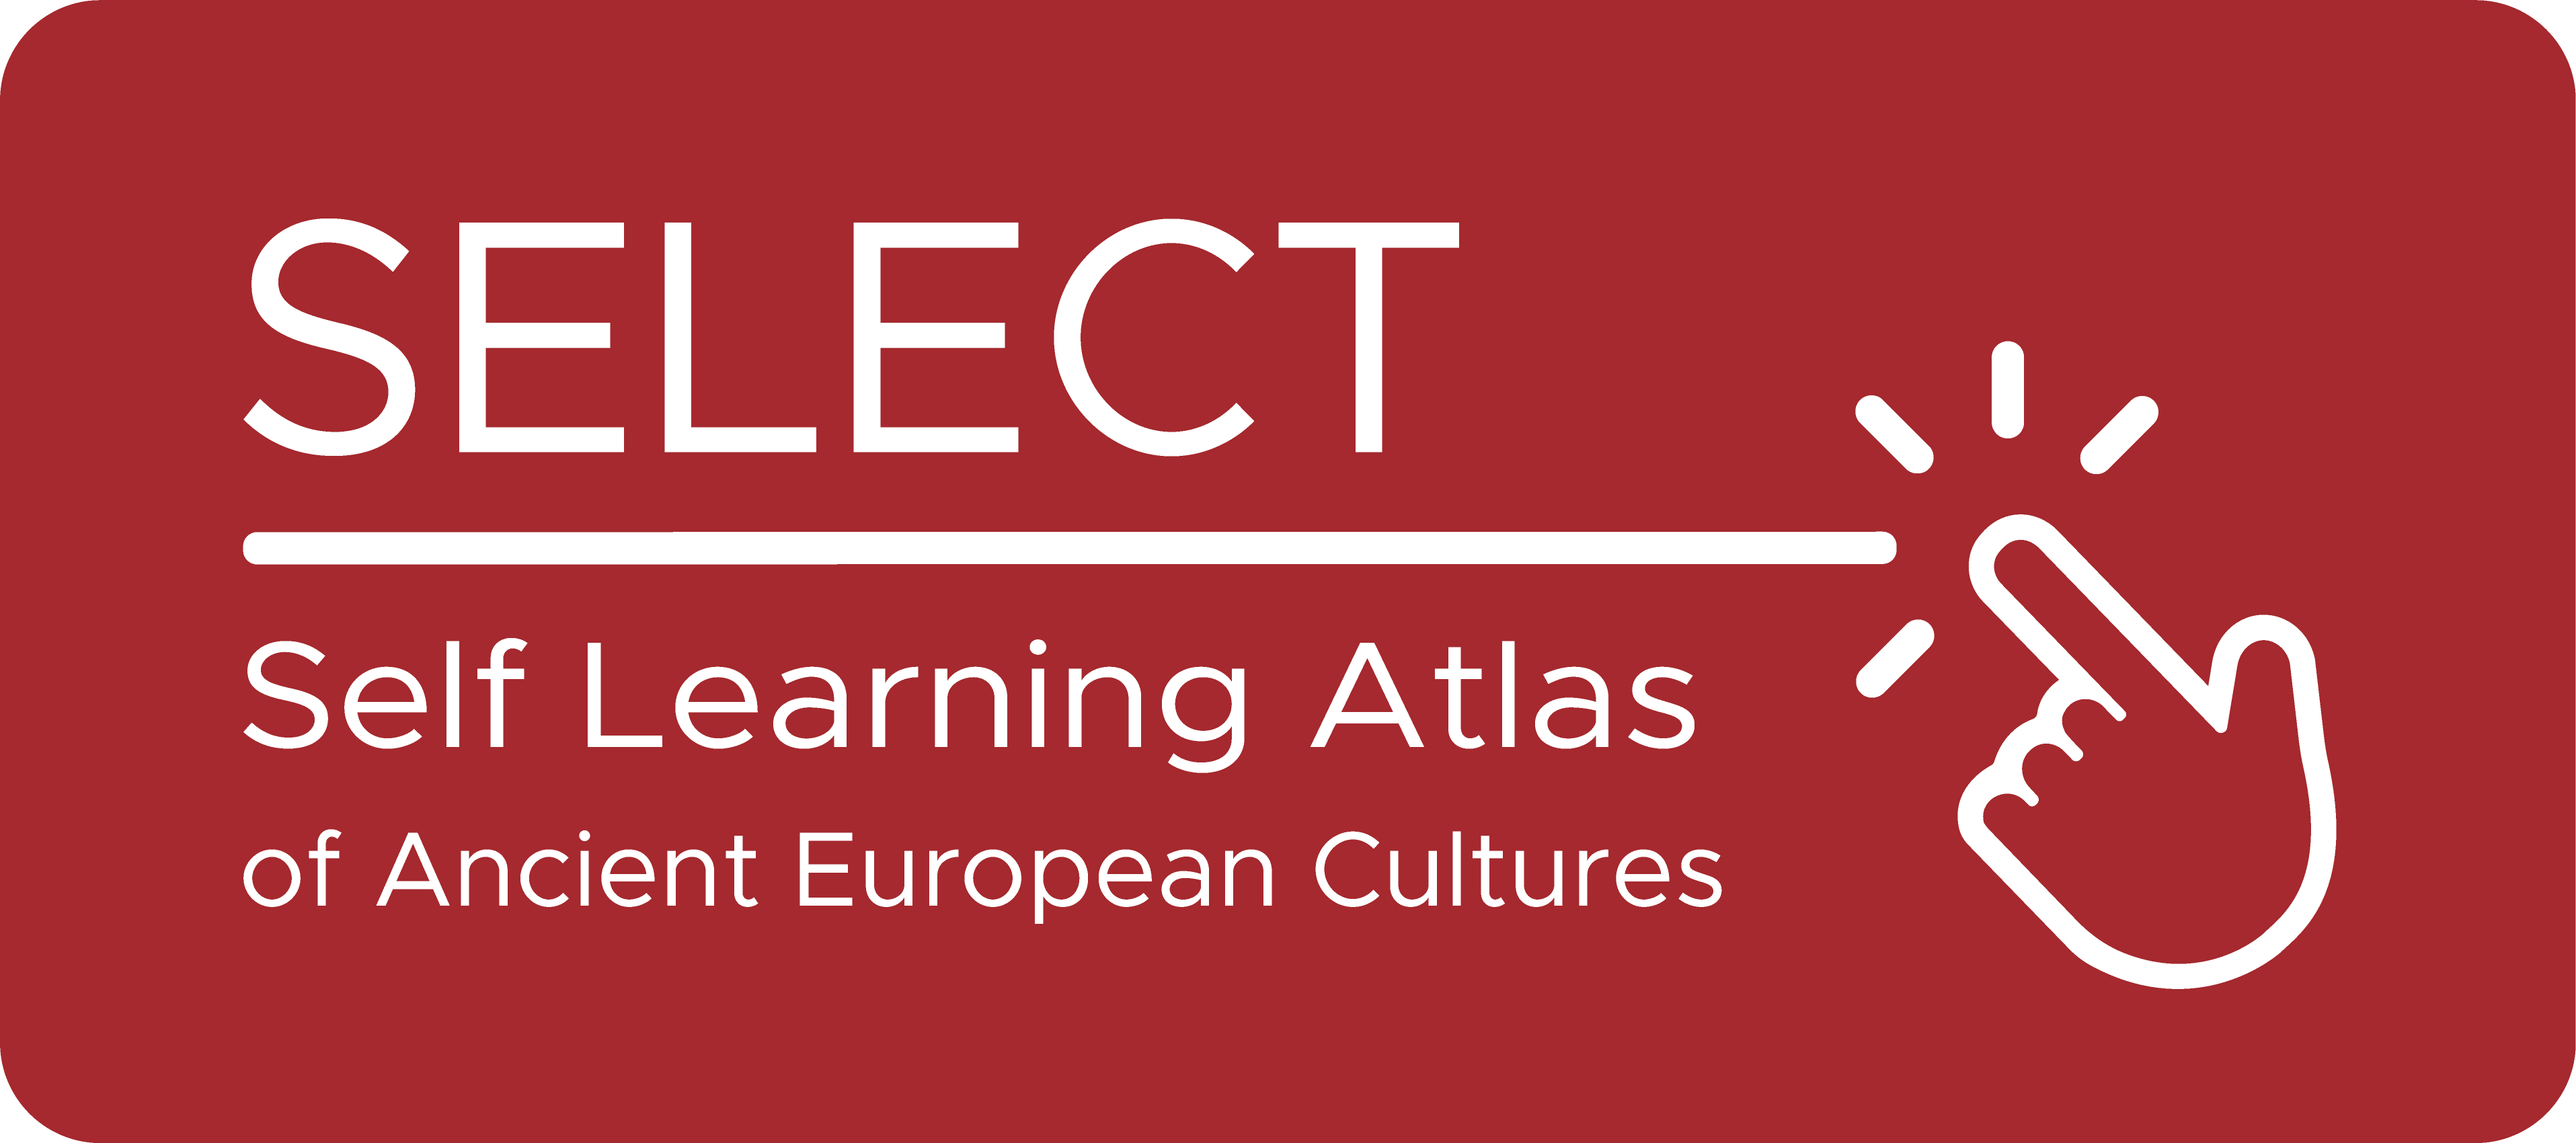 SELECT Self-Learning Atlas of Ancient European CulTures